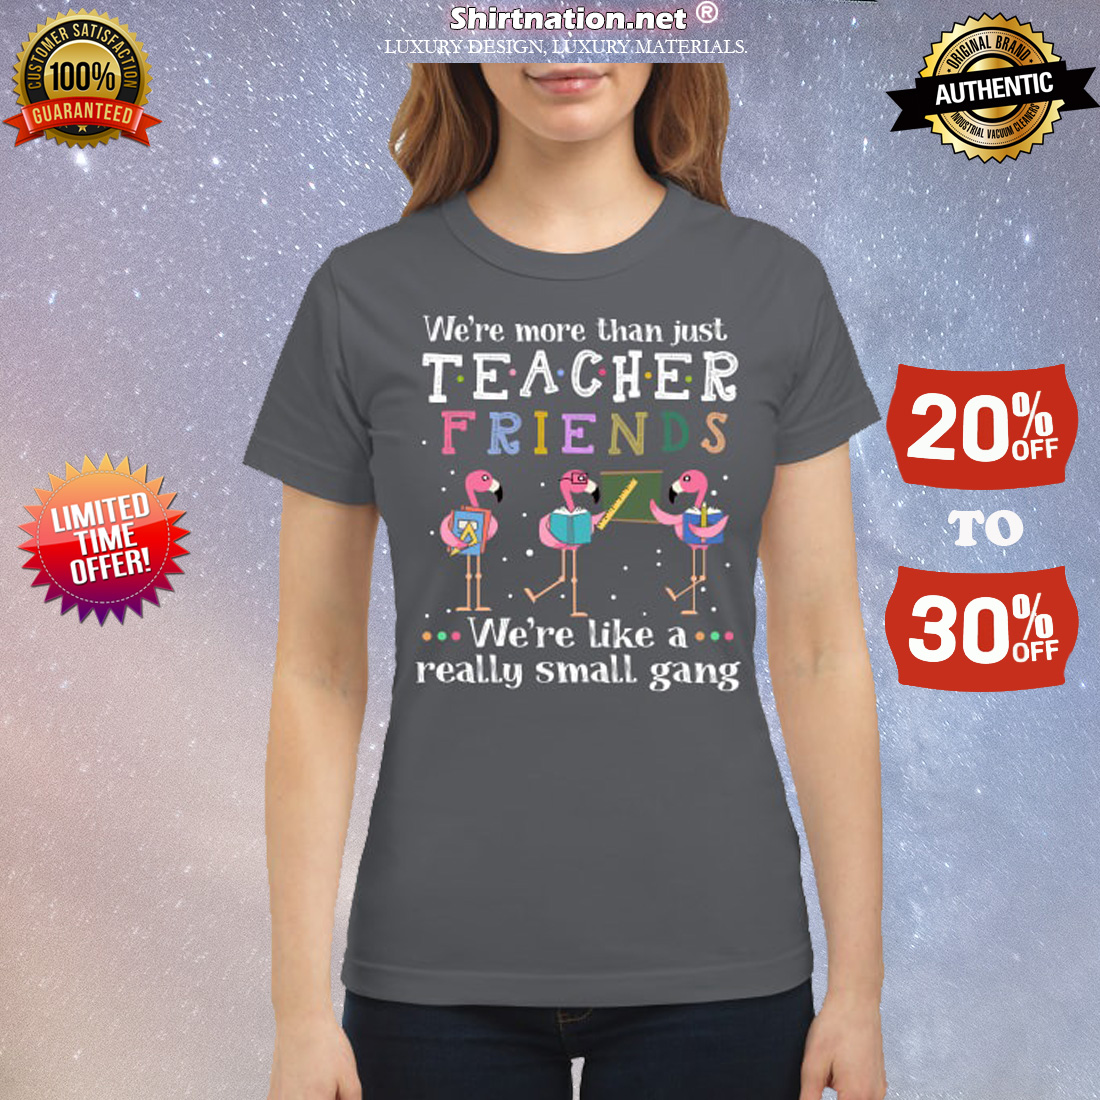 Flamingo we are more than just teacher we are like a small gang classic shirt